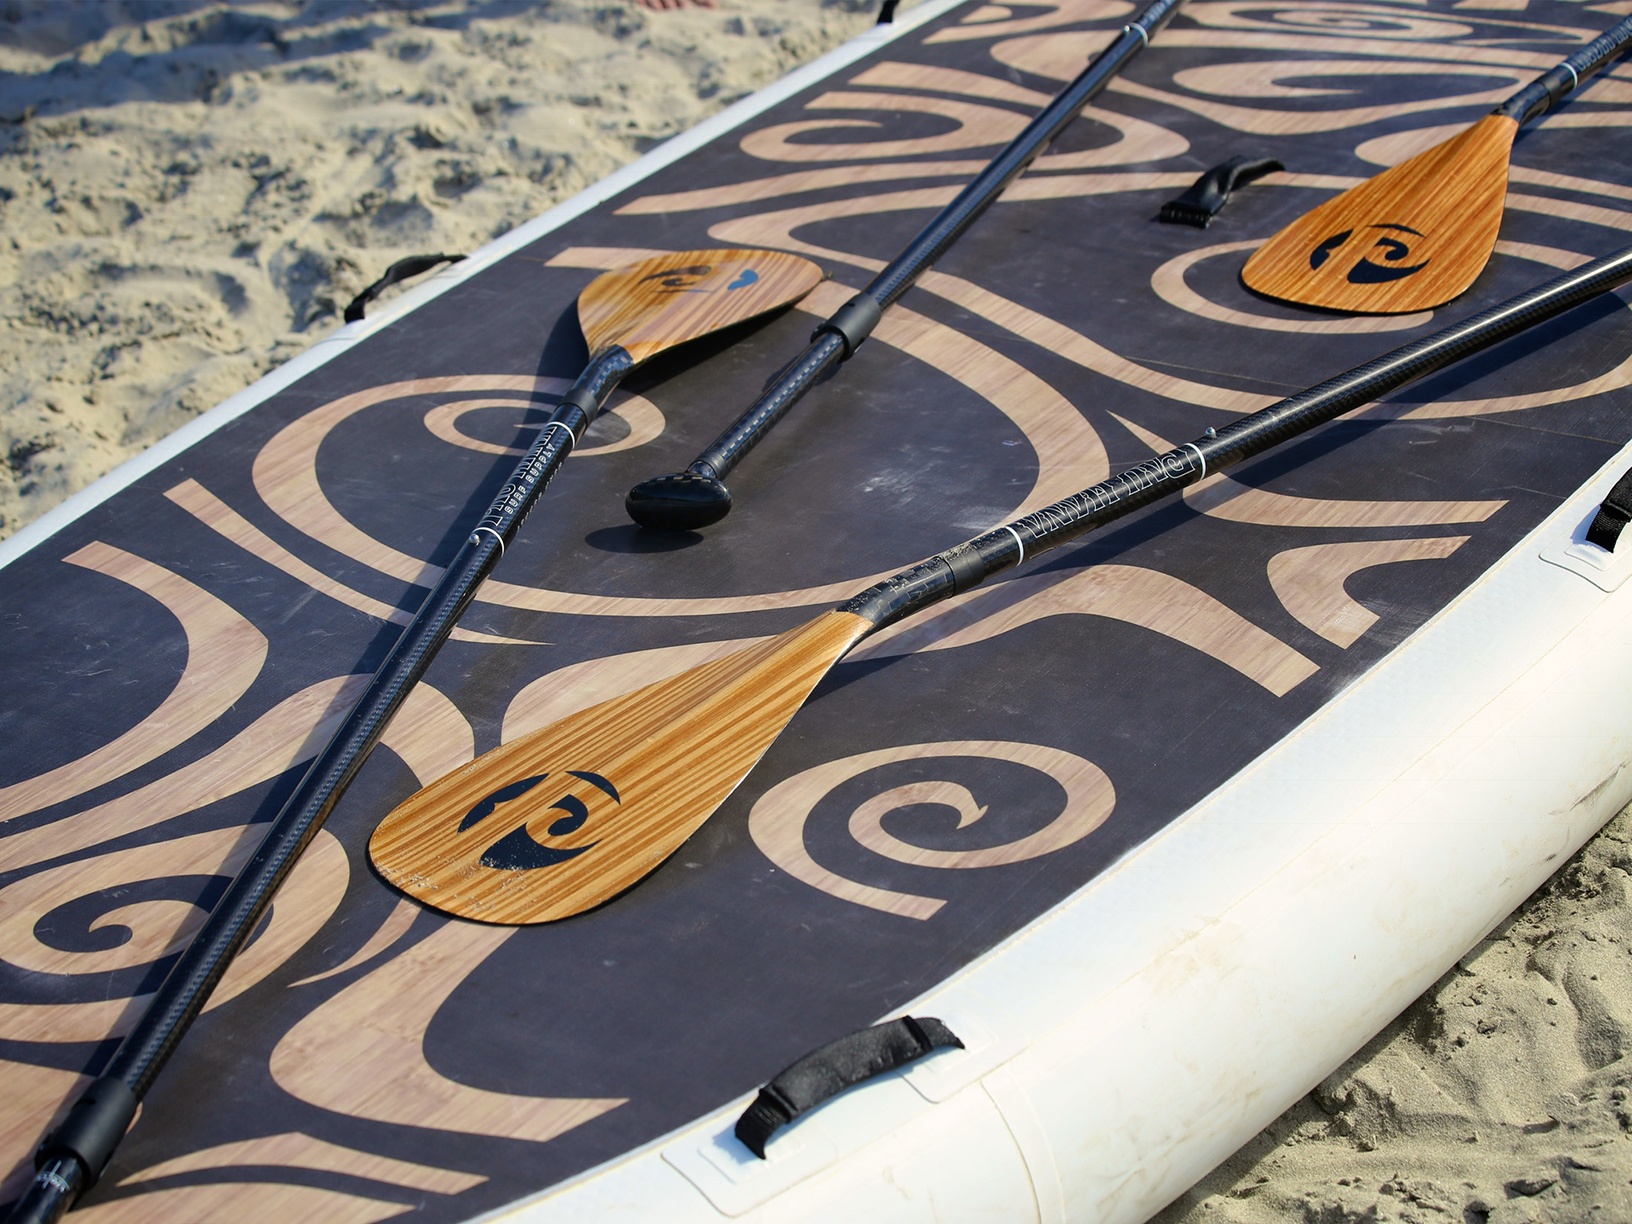 Close up of the Oahu nui inflatable giant sup